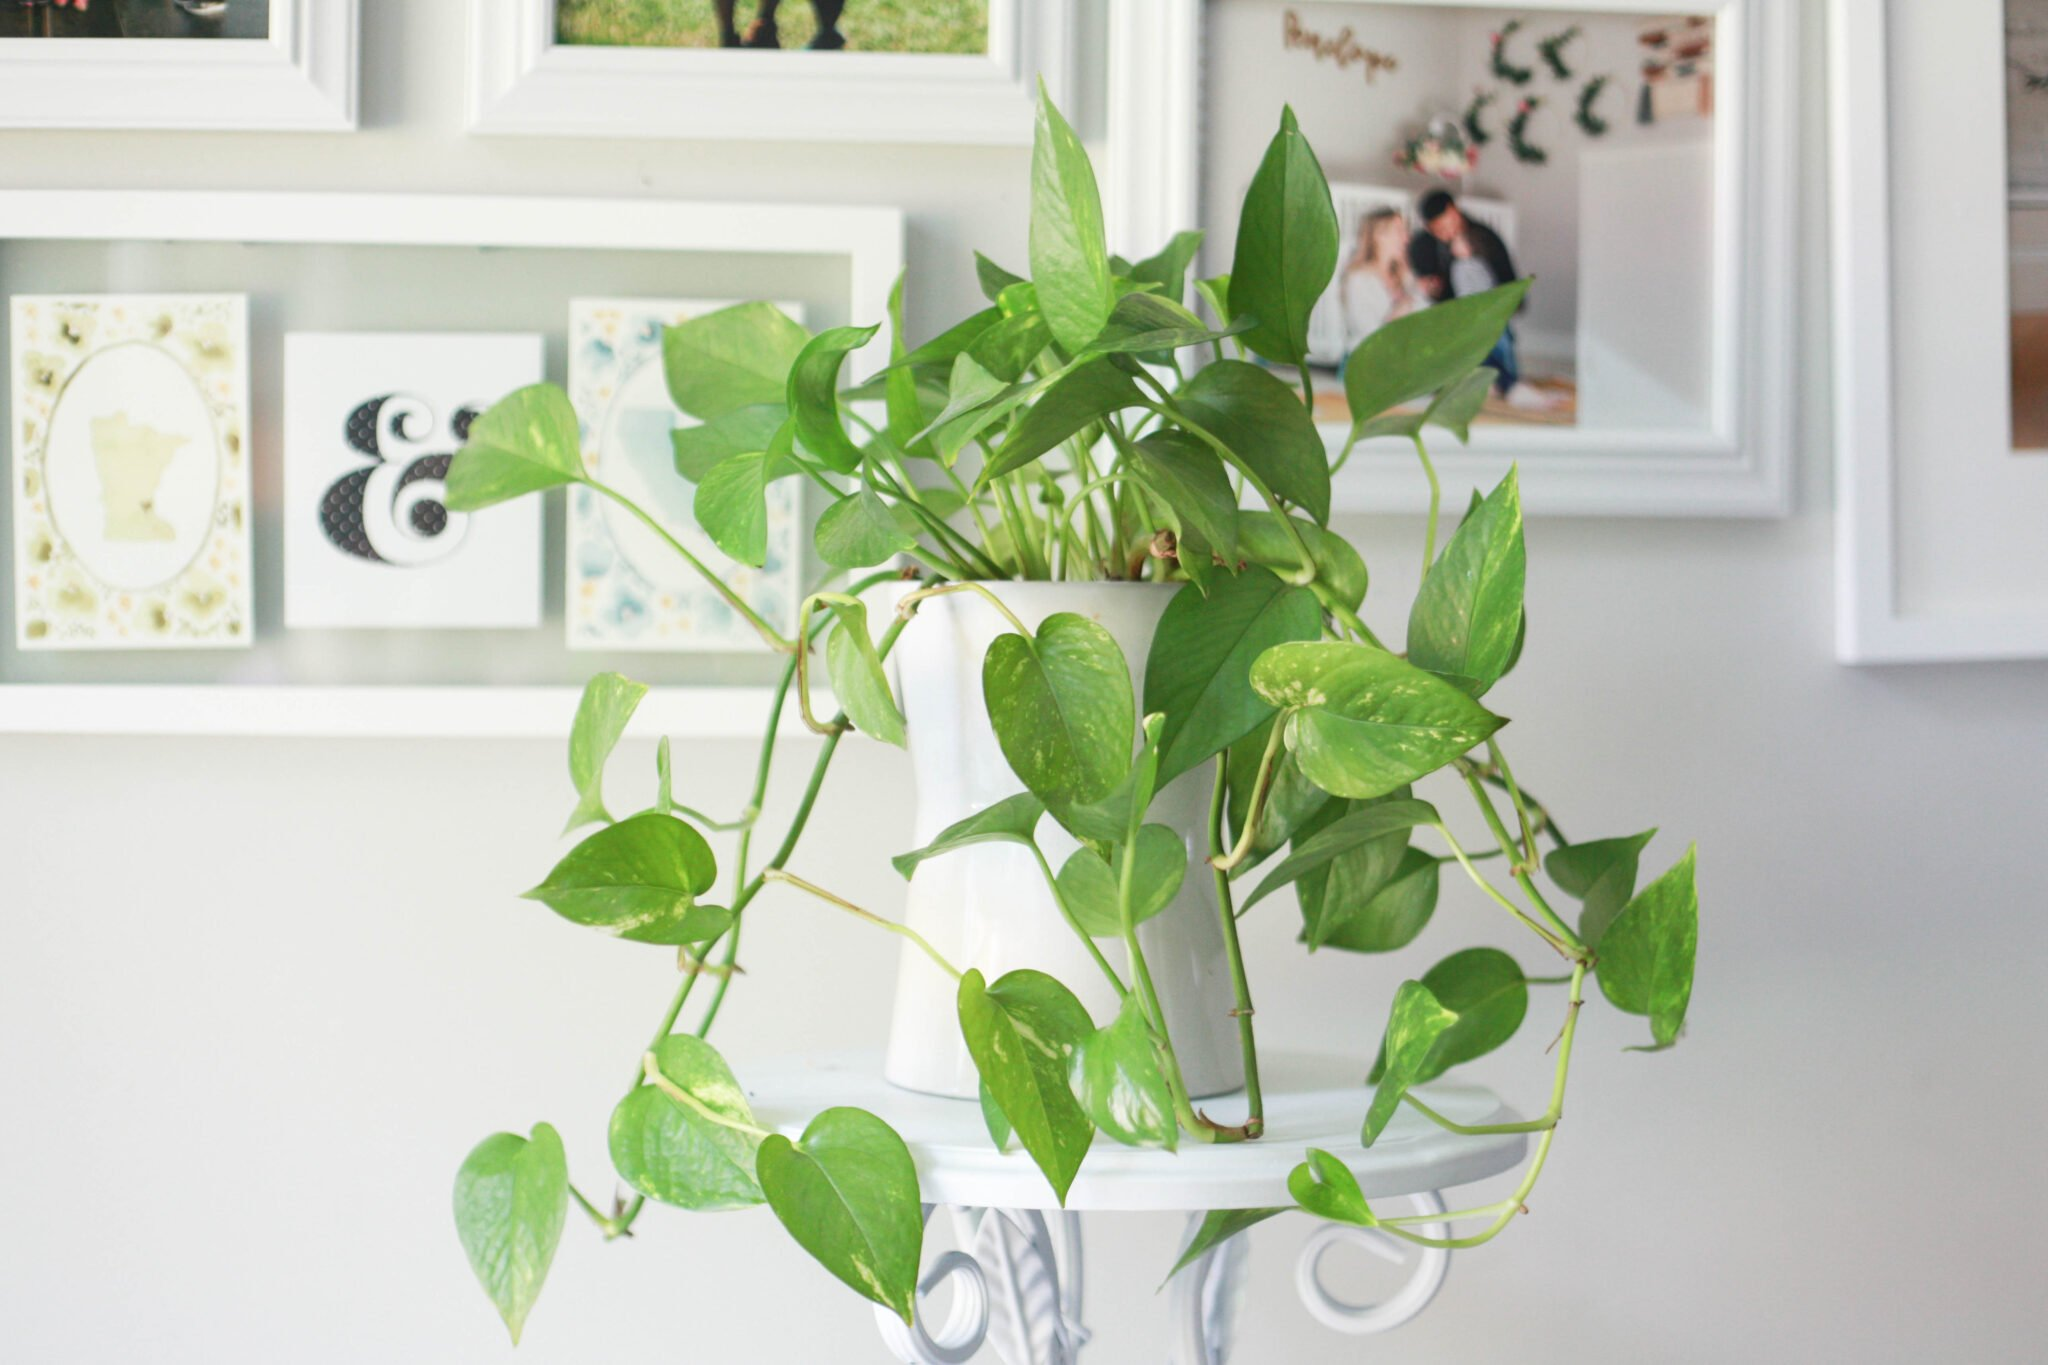 pothos plant care - how to grow and propagate #pothosplant #houseplant